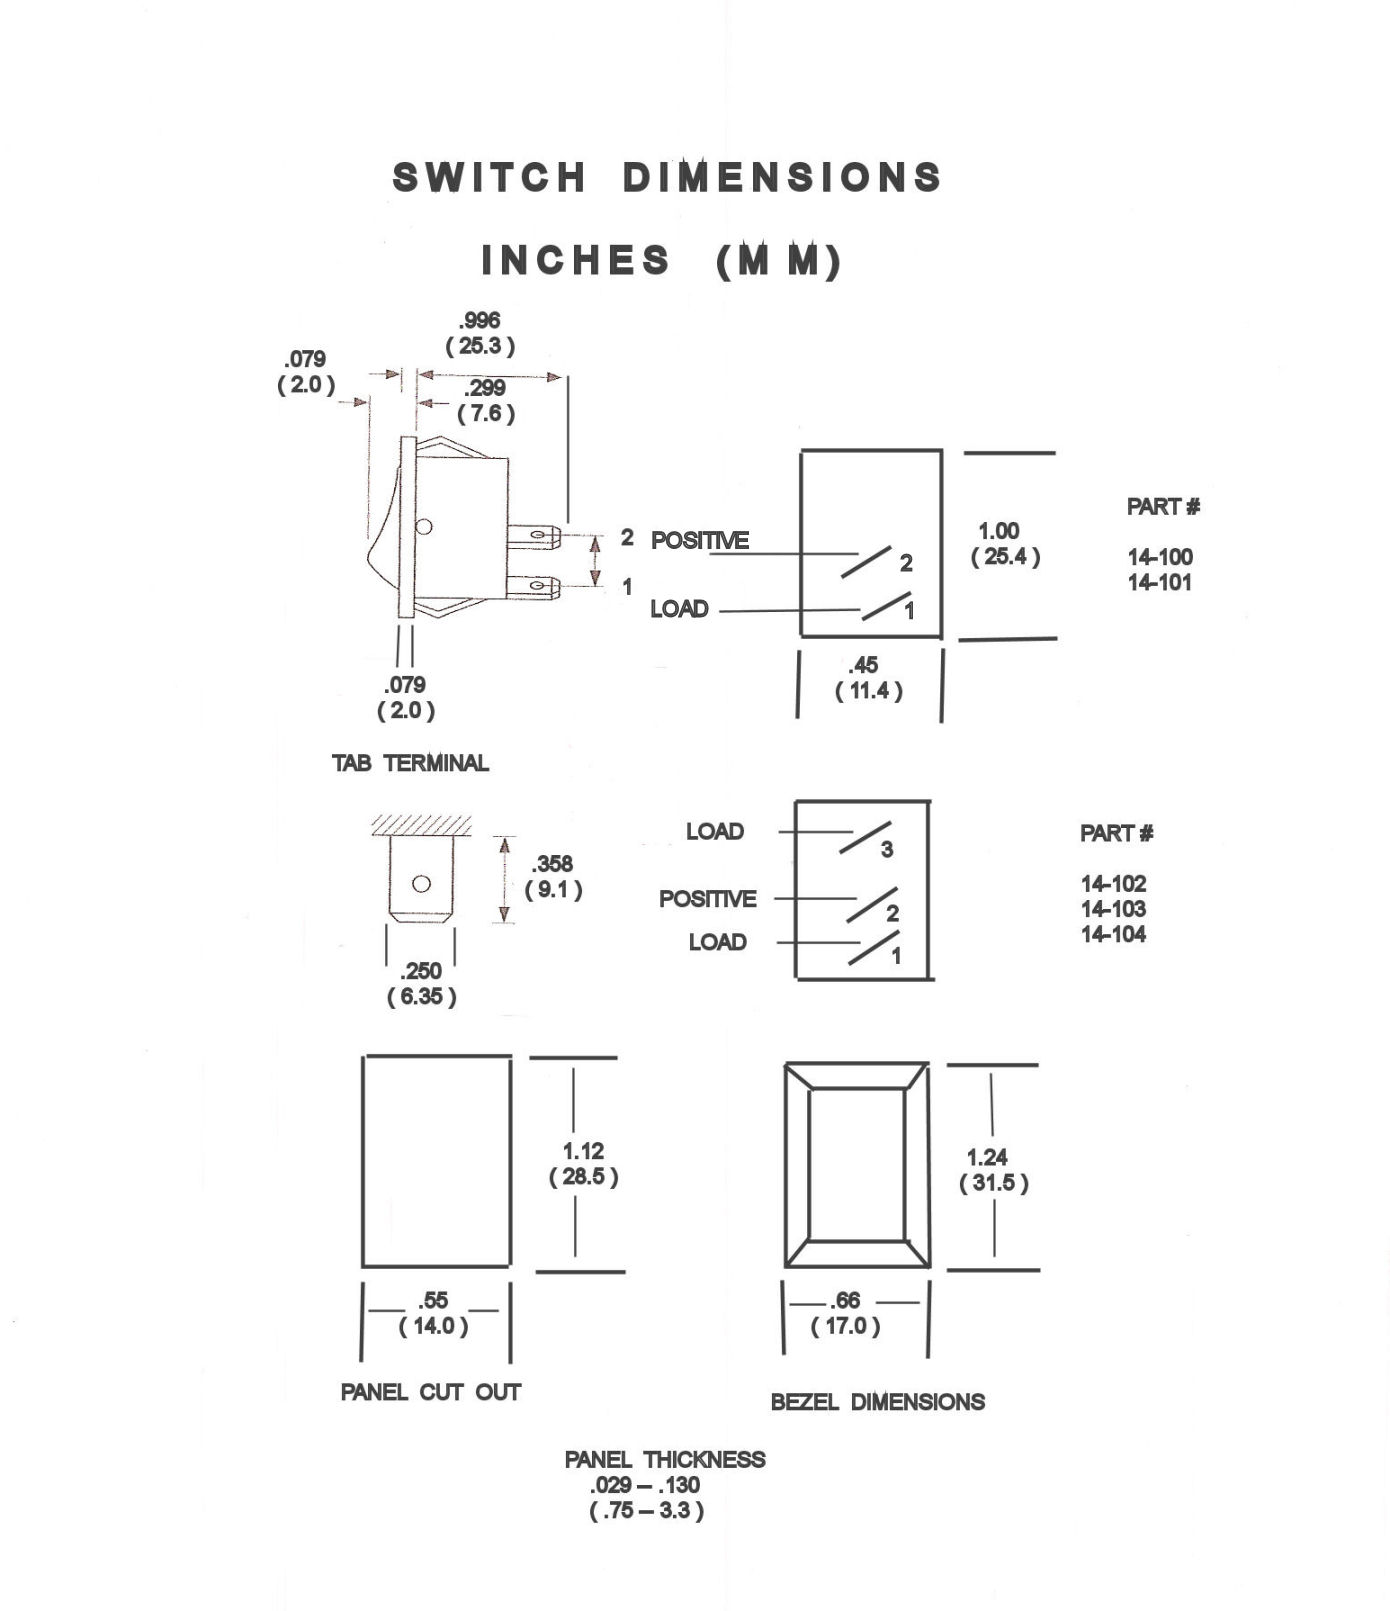 6 pin rocker switch wiring diagram for ignition on lawn mower are these 12 or 24 volt switches